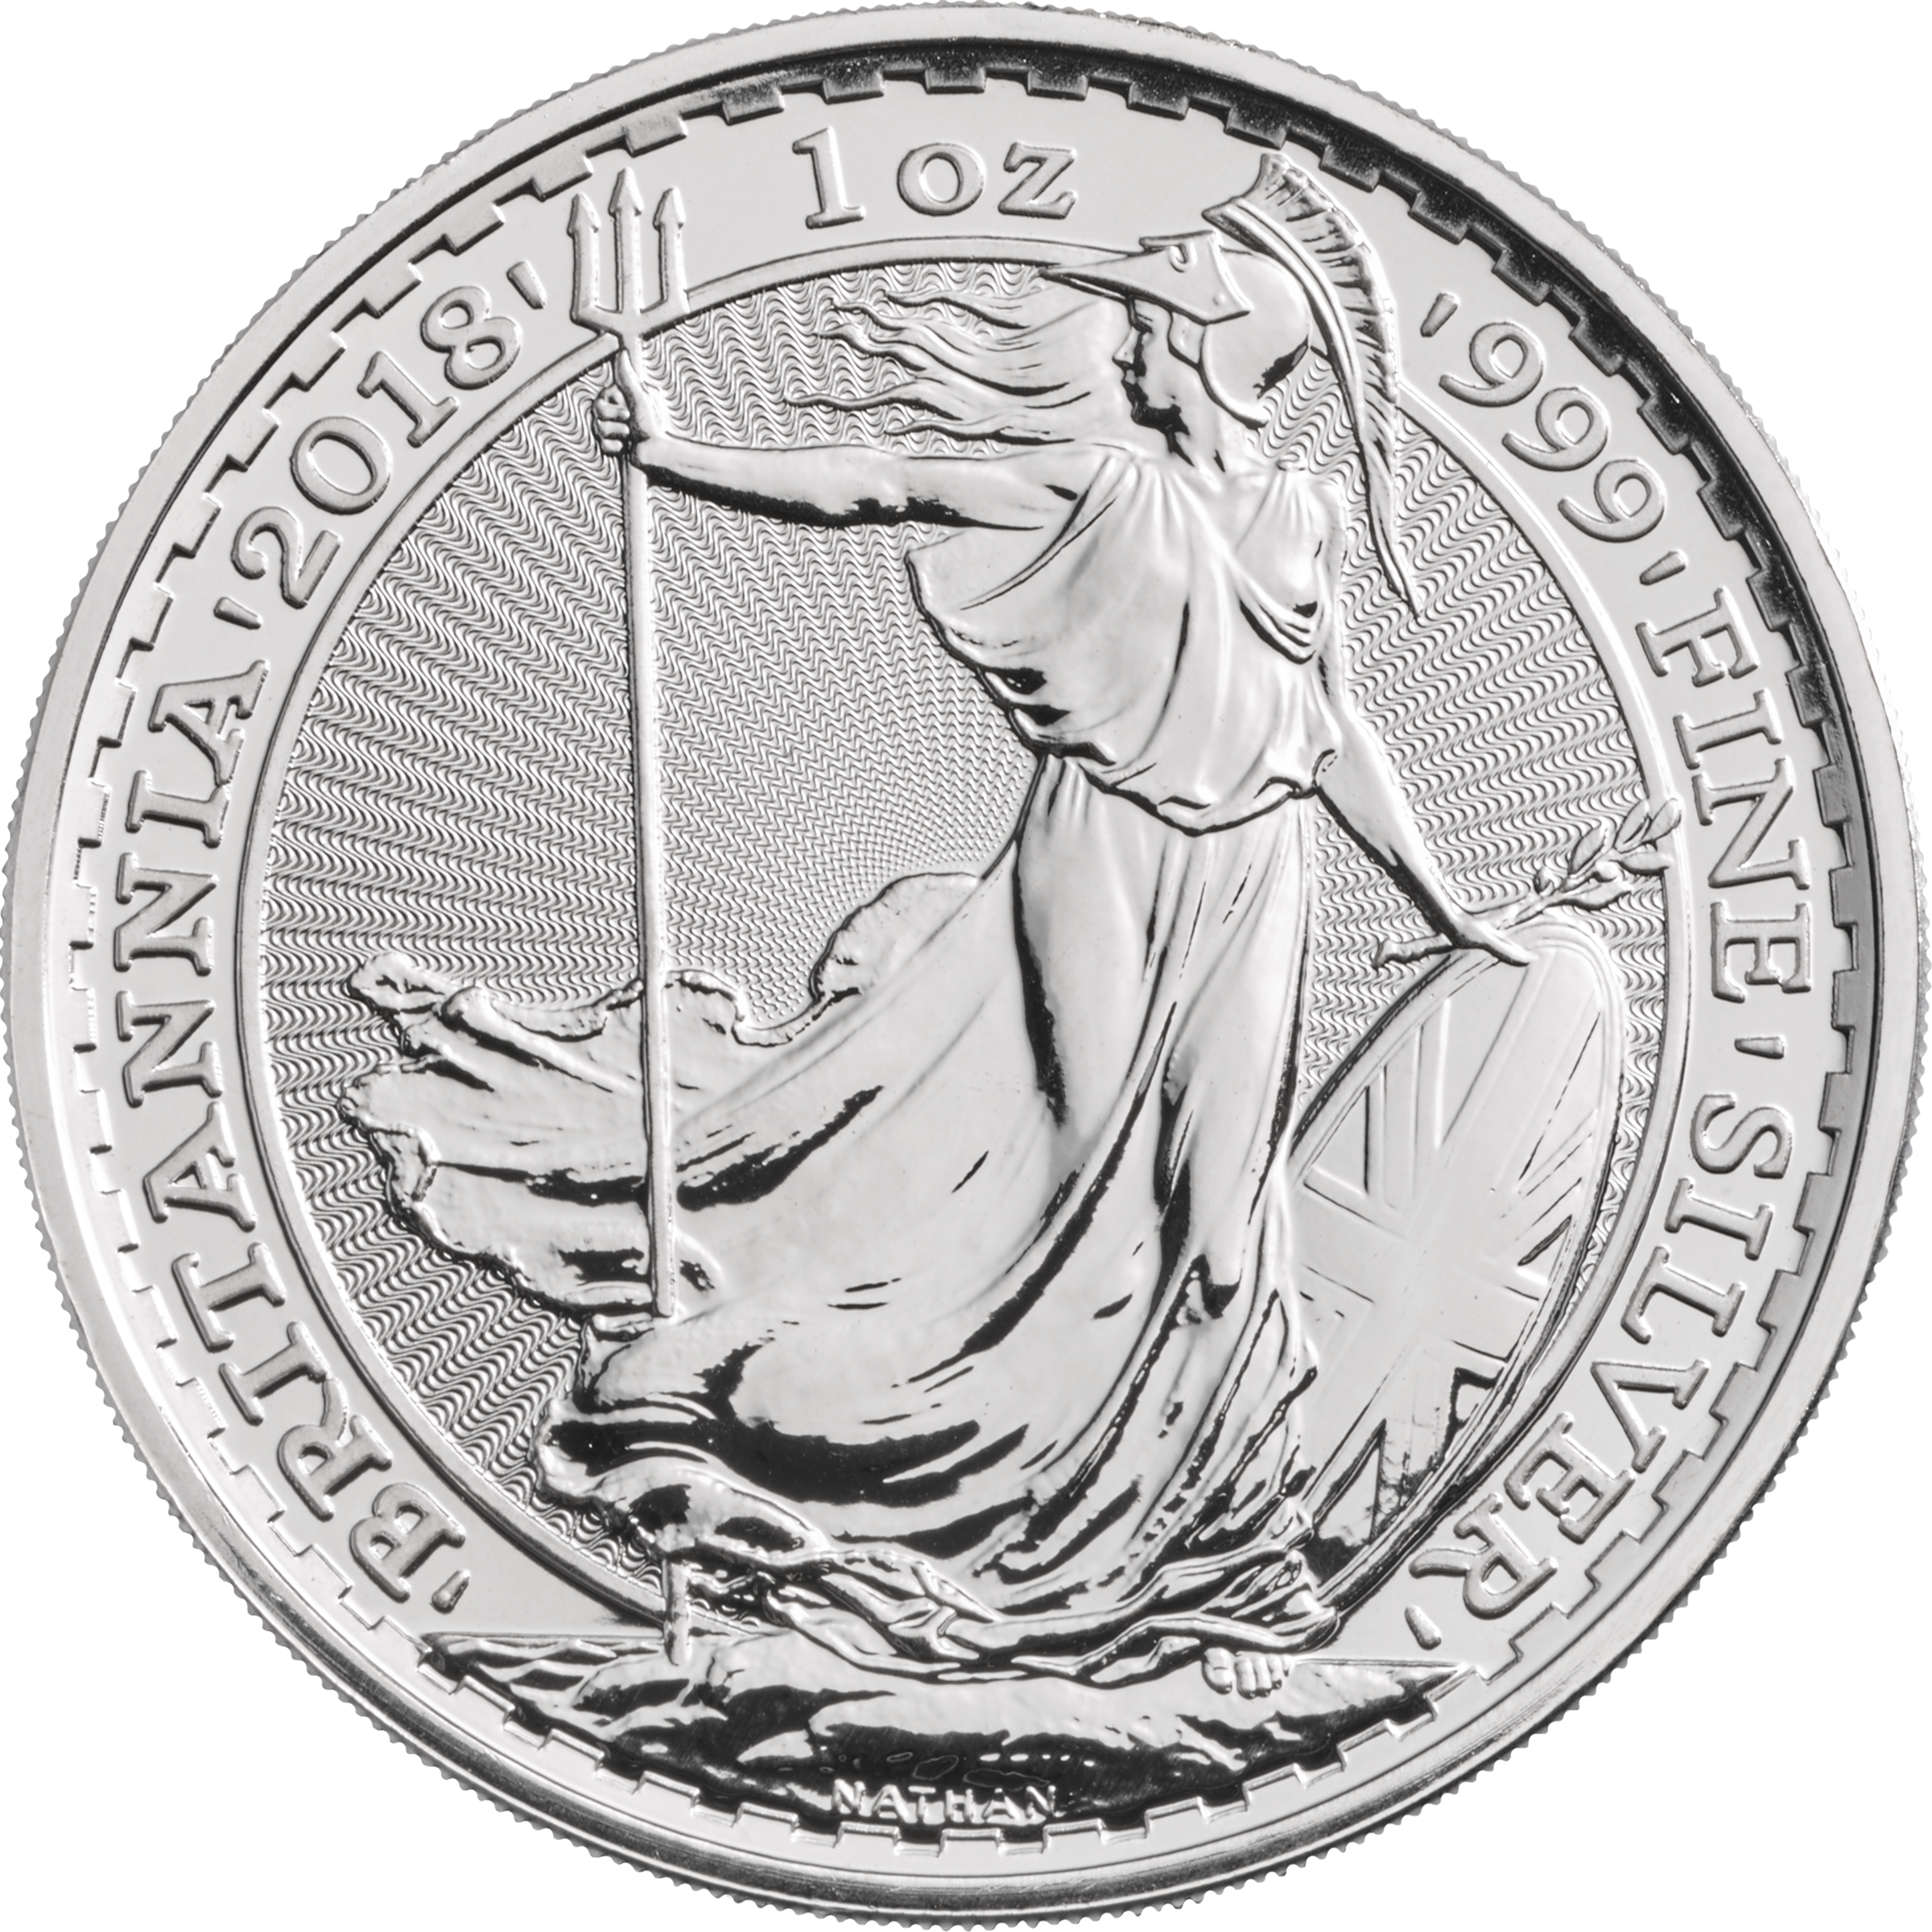 Buy Silver And Sell Gold Now Buy Silver And Sell Gold Now 2018 Silver britannia 1oz